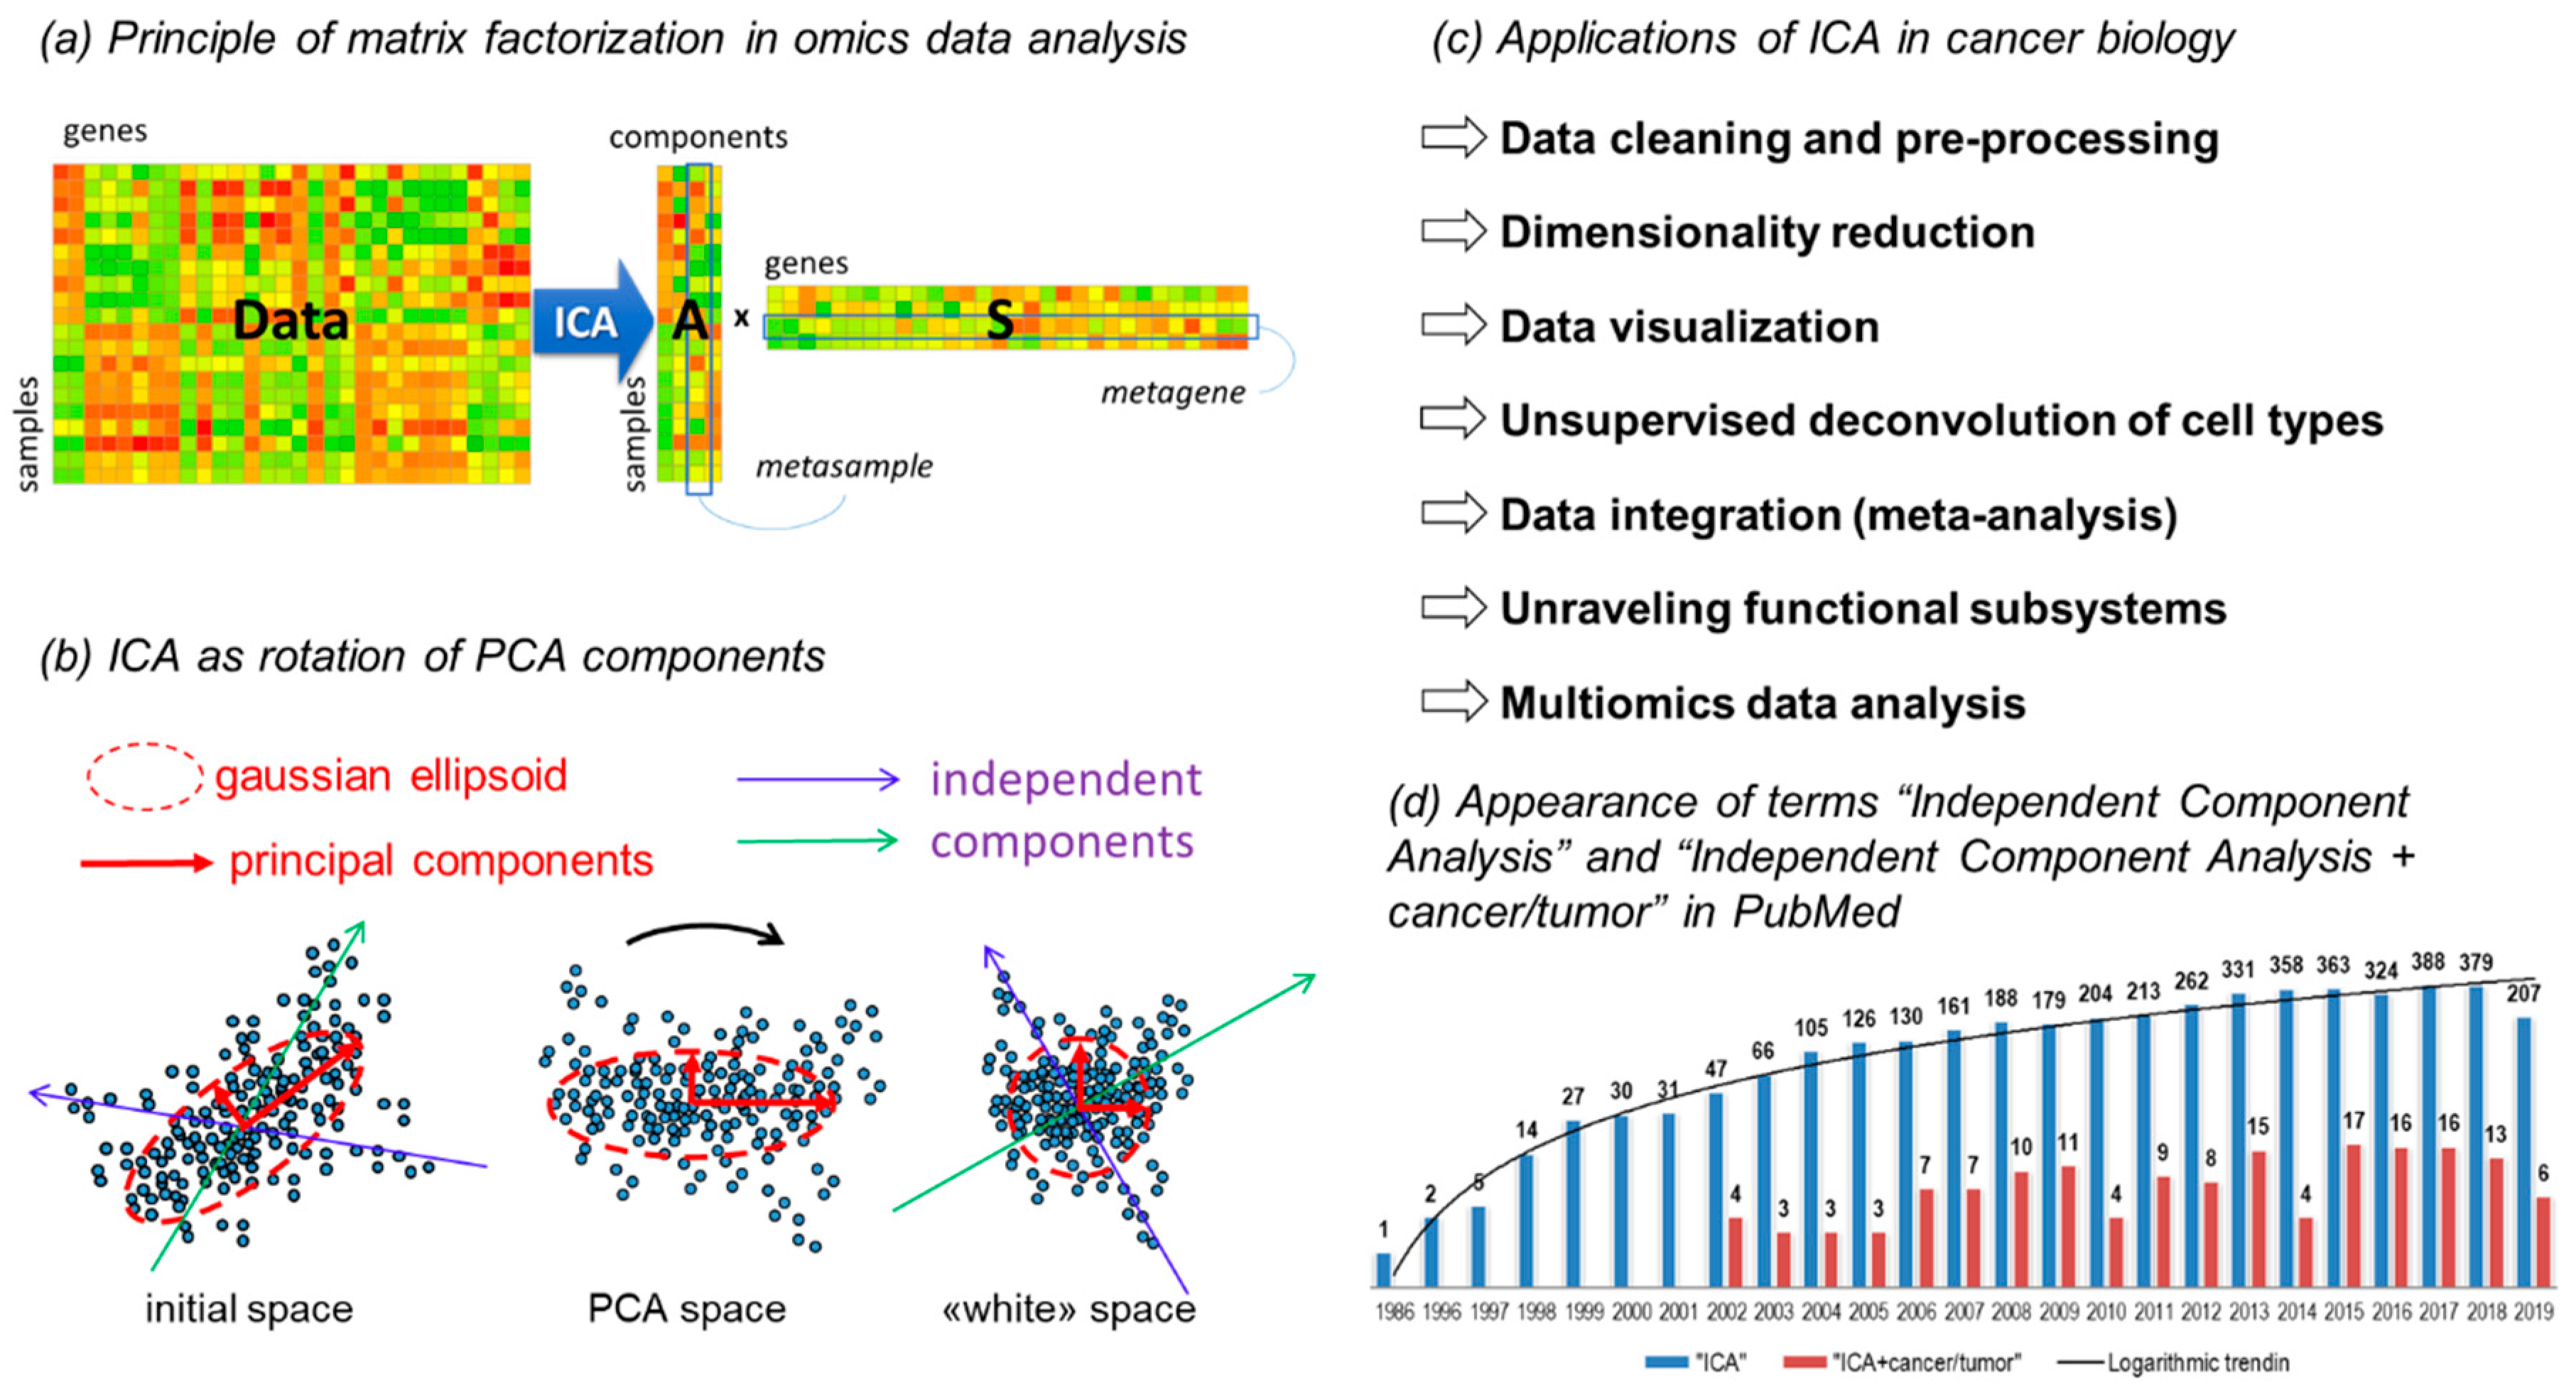 IJMS | Free Full-Text | Independent Component Analysis for